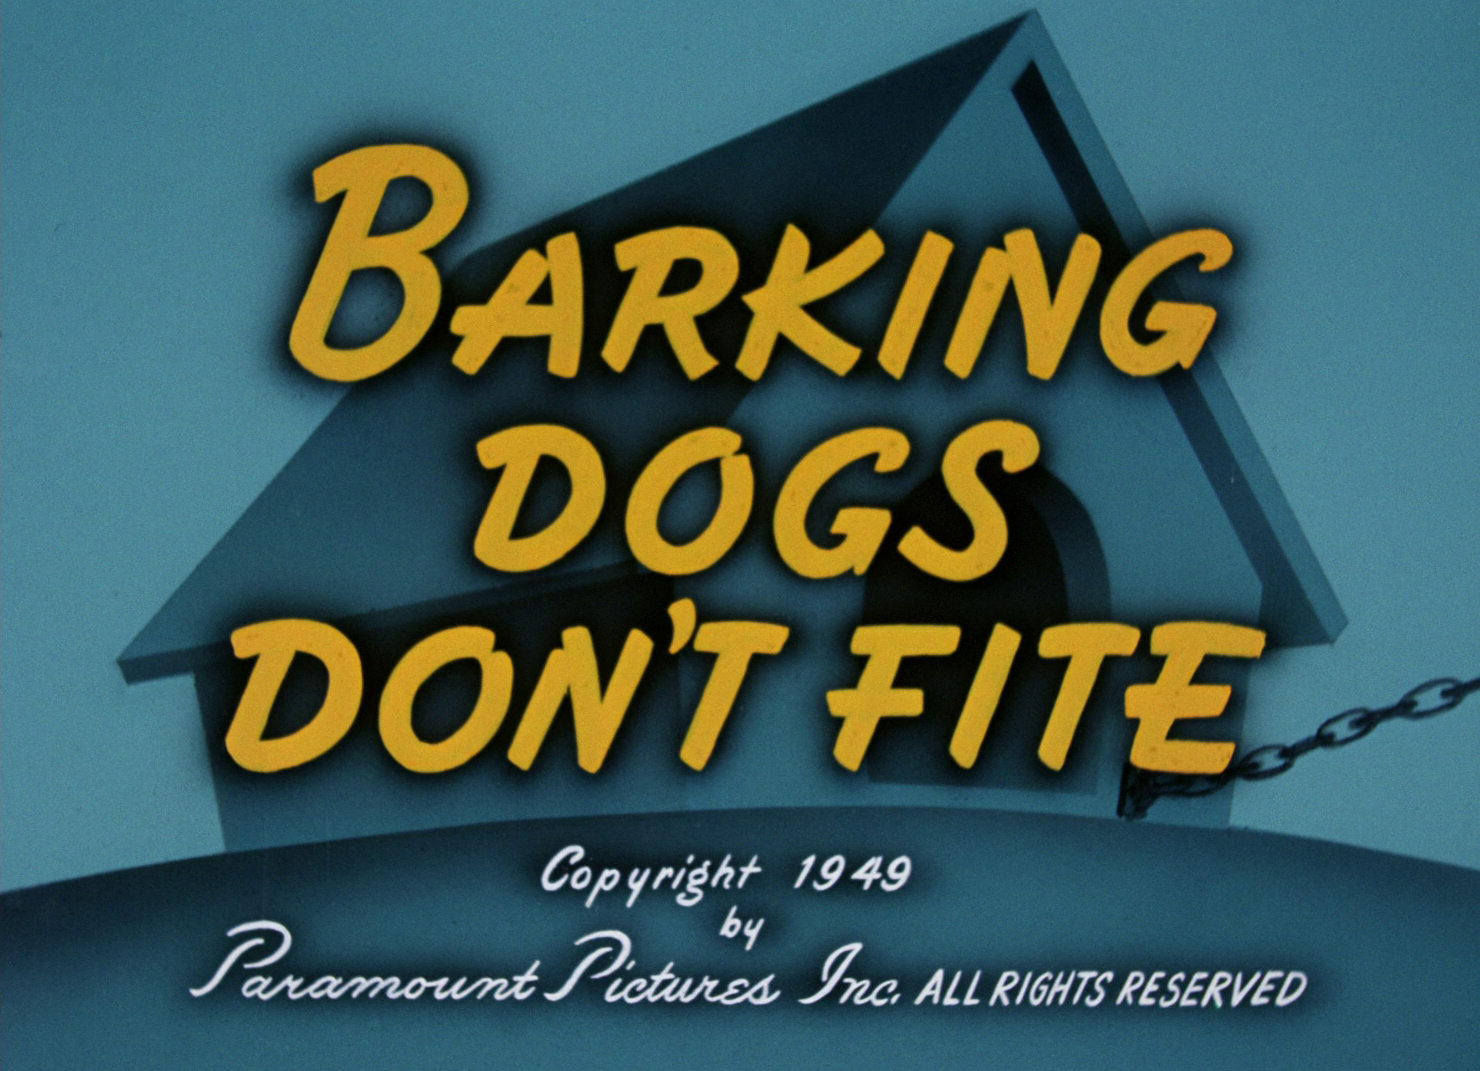 File:Barking Dogs Don't Fite.png